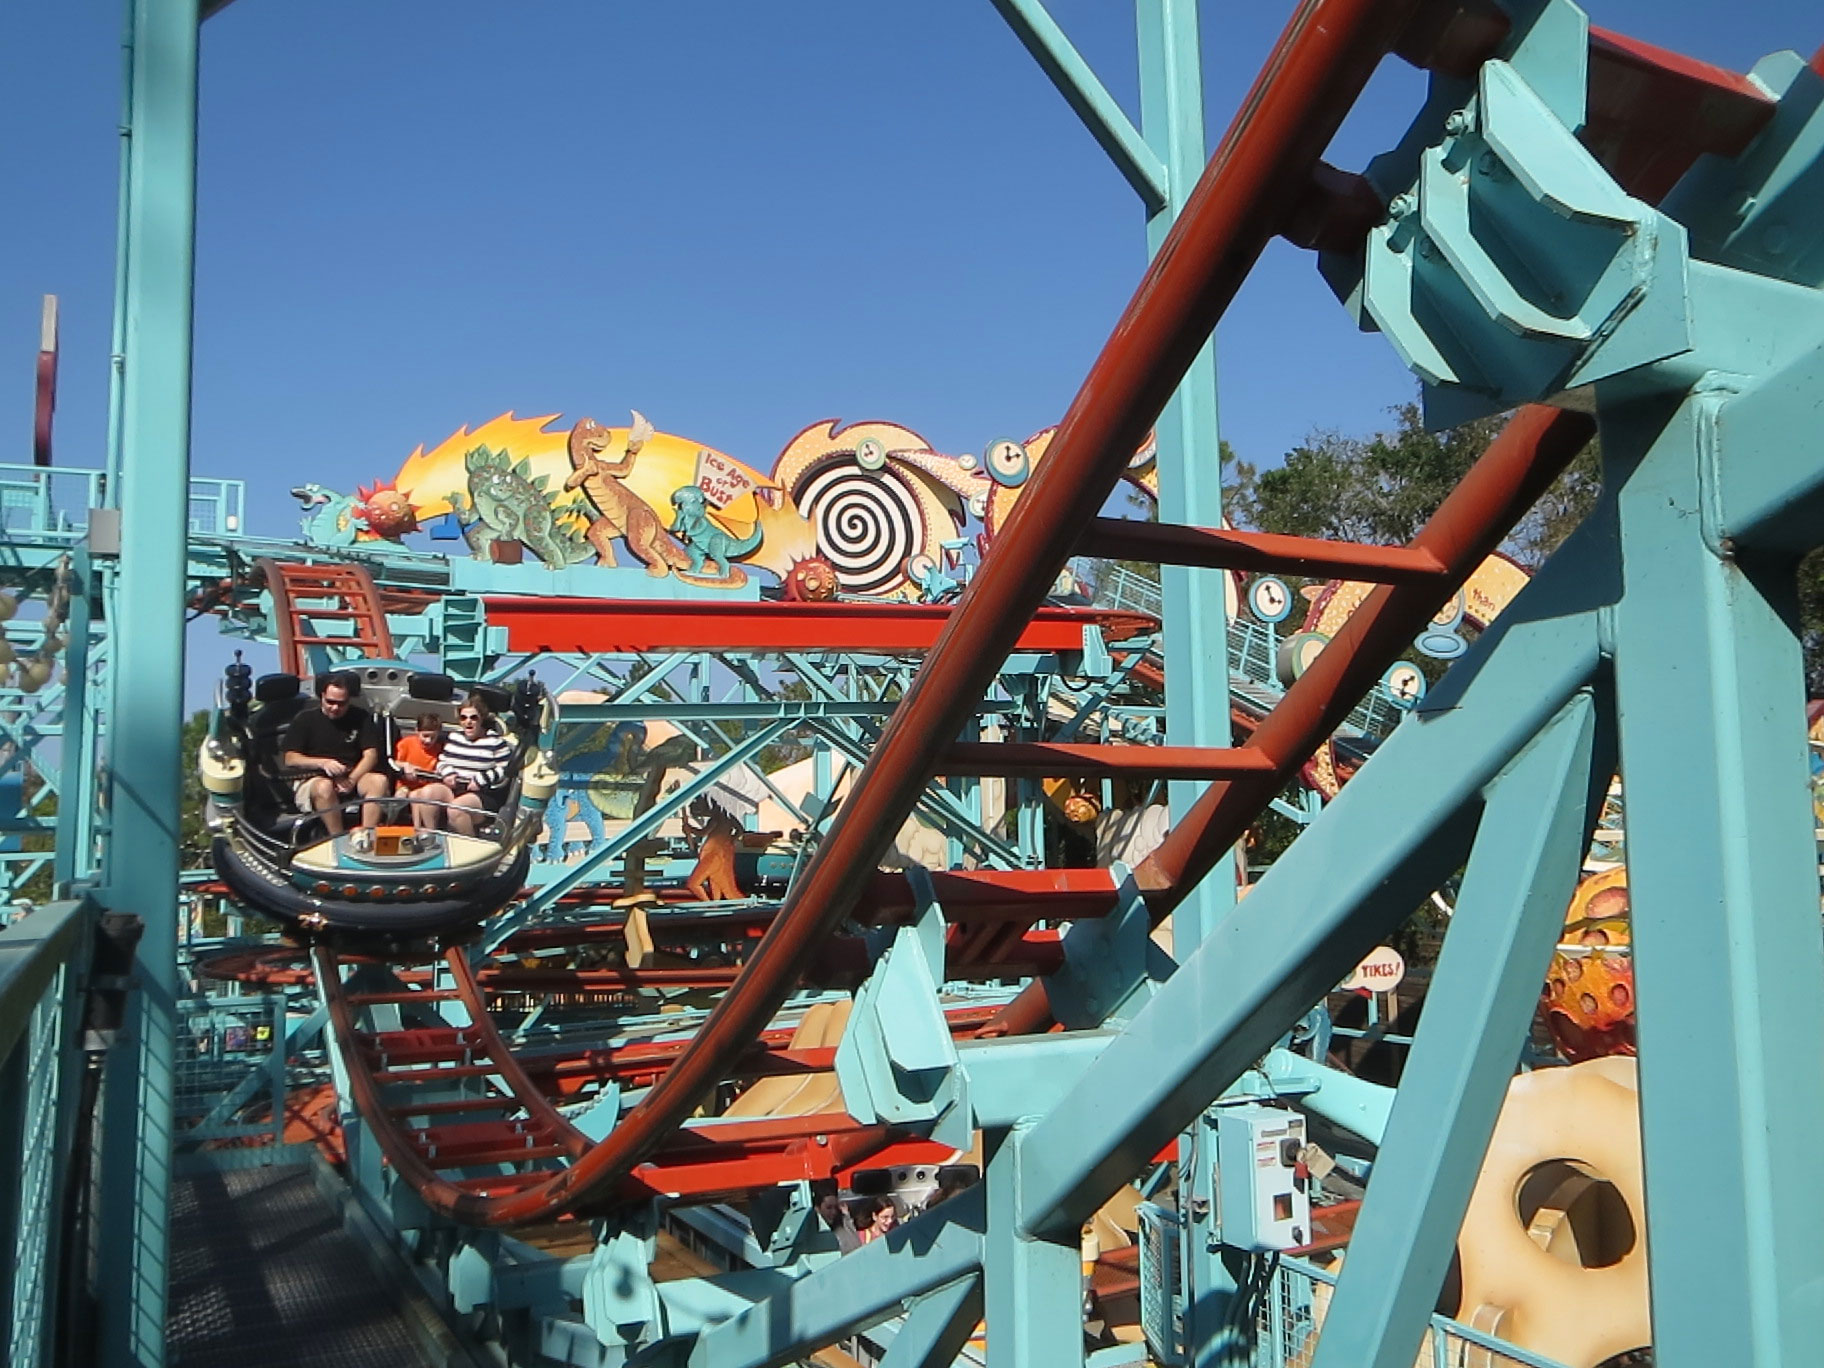 Spinning Coasters Videos Amp Facts Coasterforce